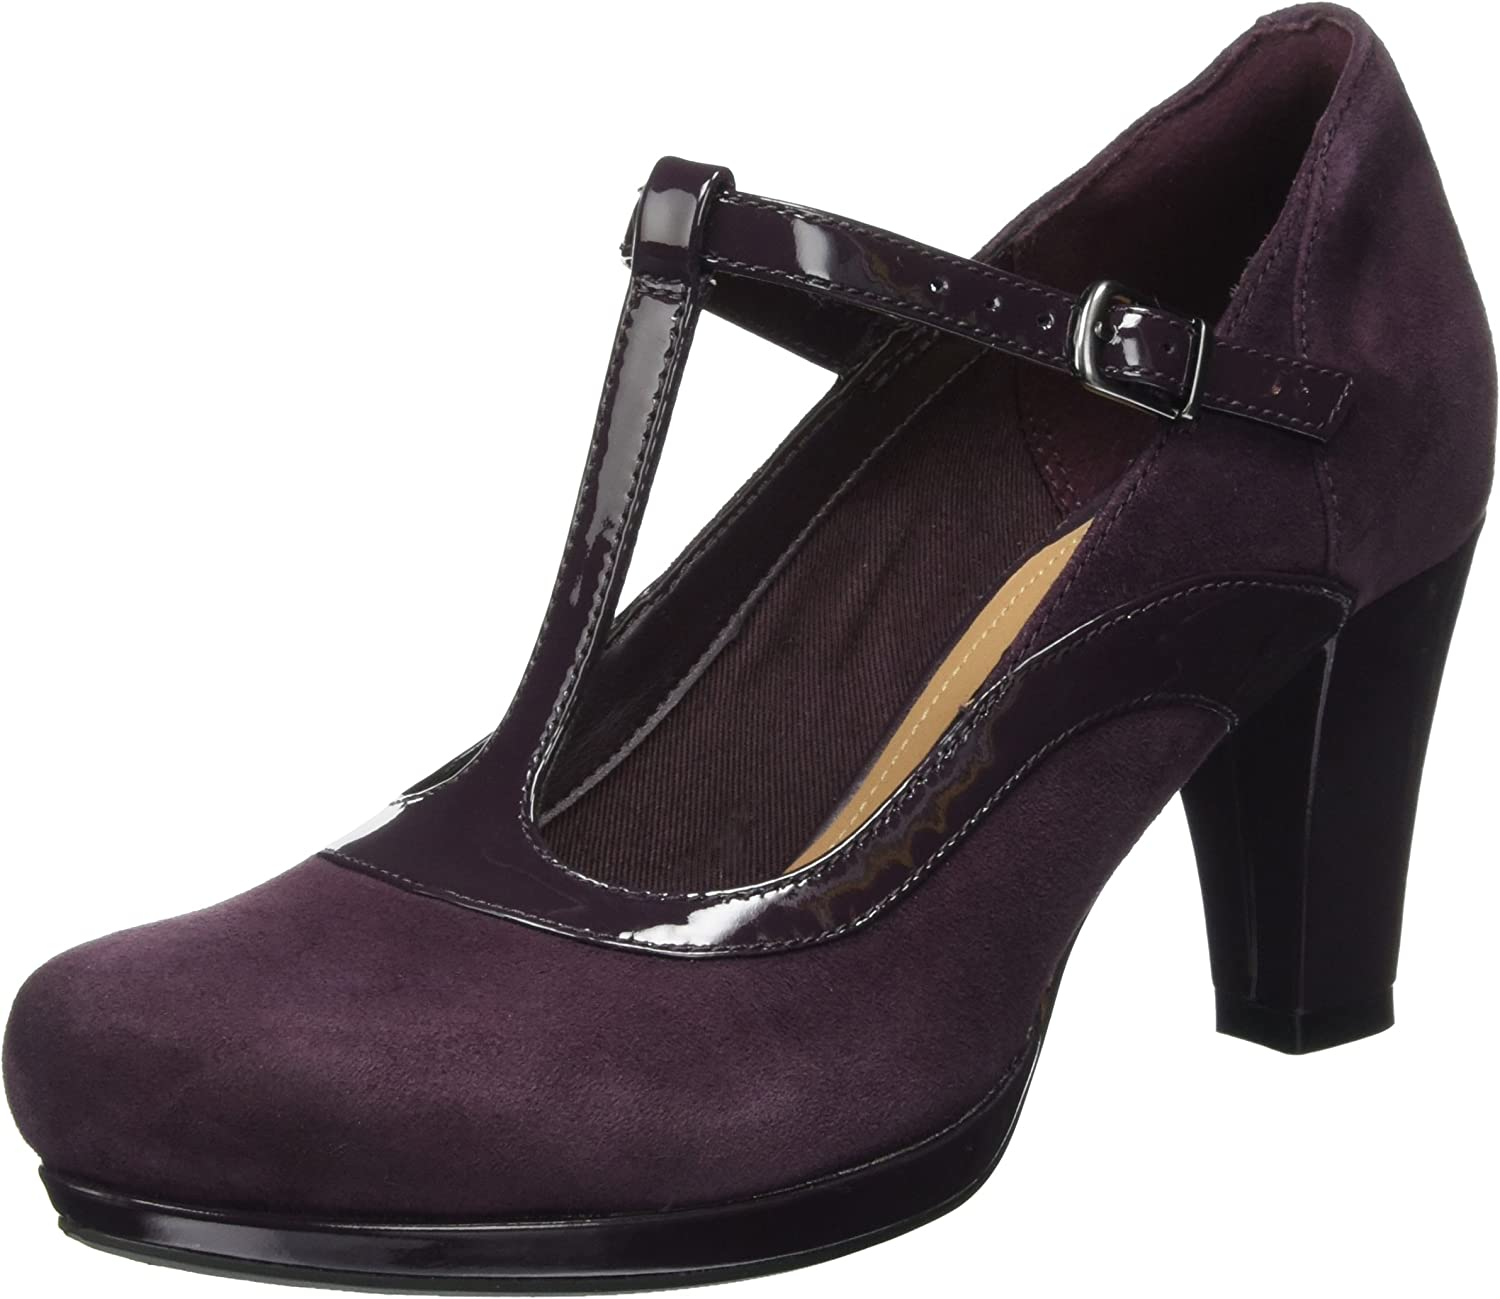 Ladies Clarks Chorus Pitch Black Or Aubergine Suede Leather T-Bar Court Shoes